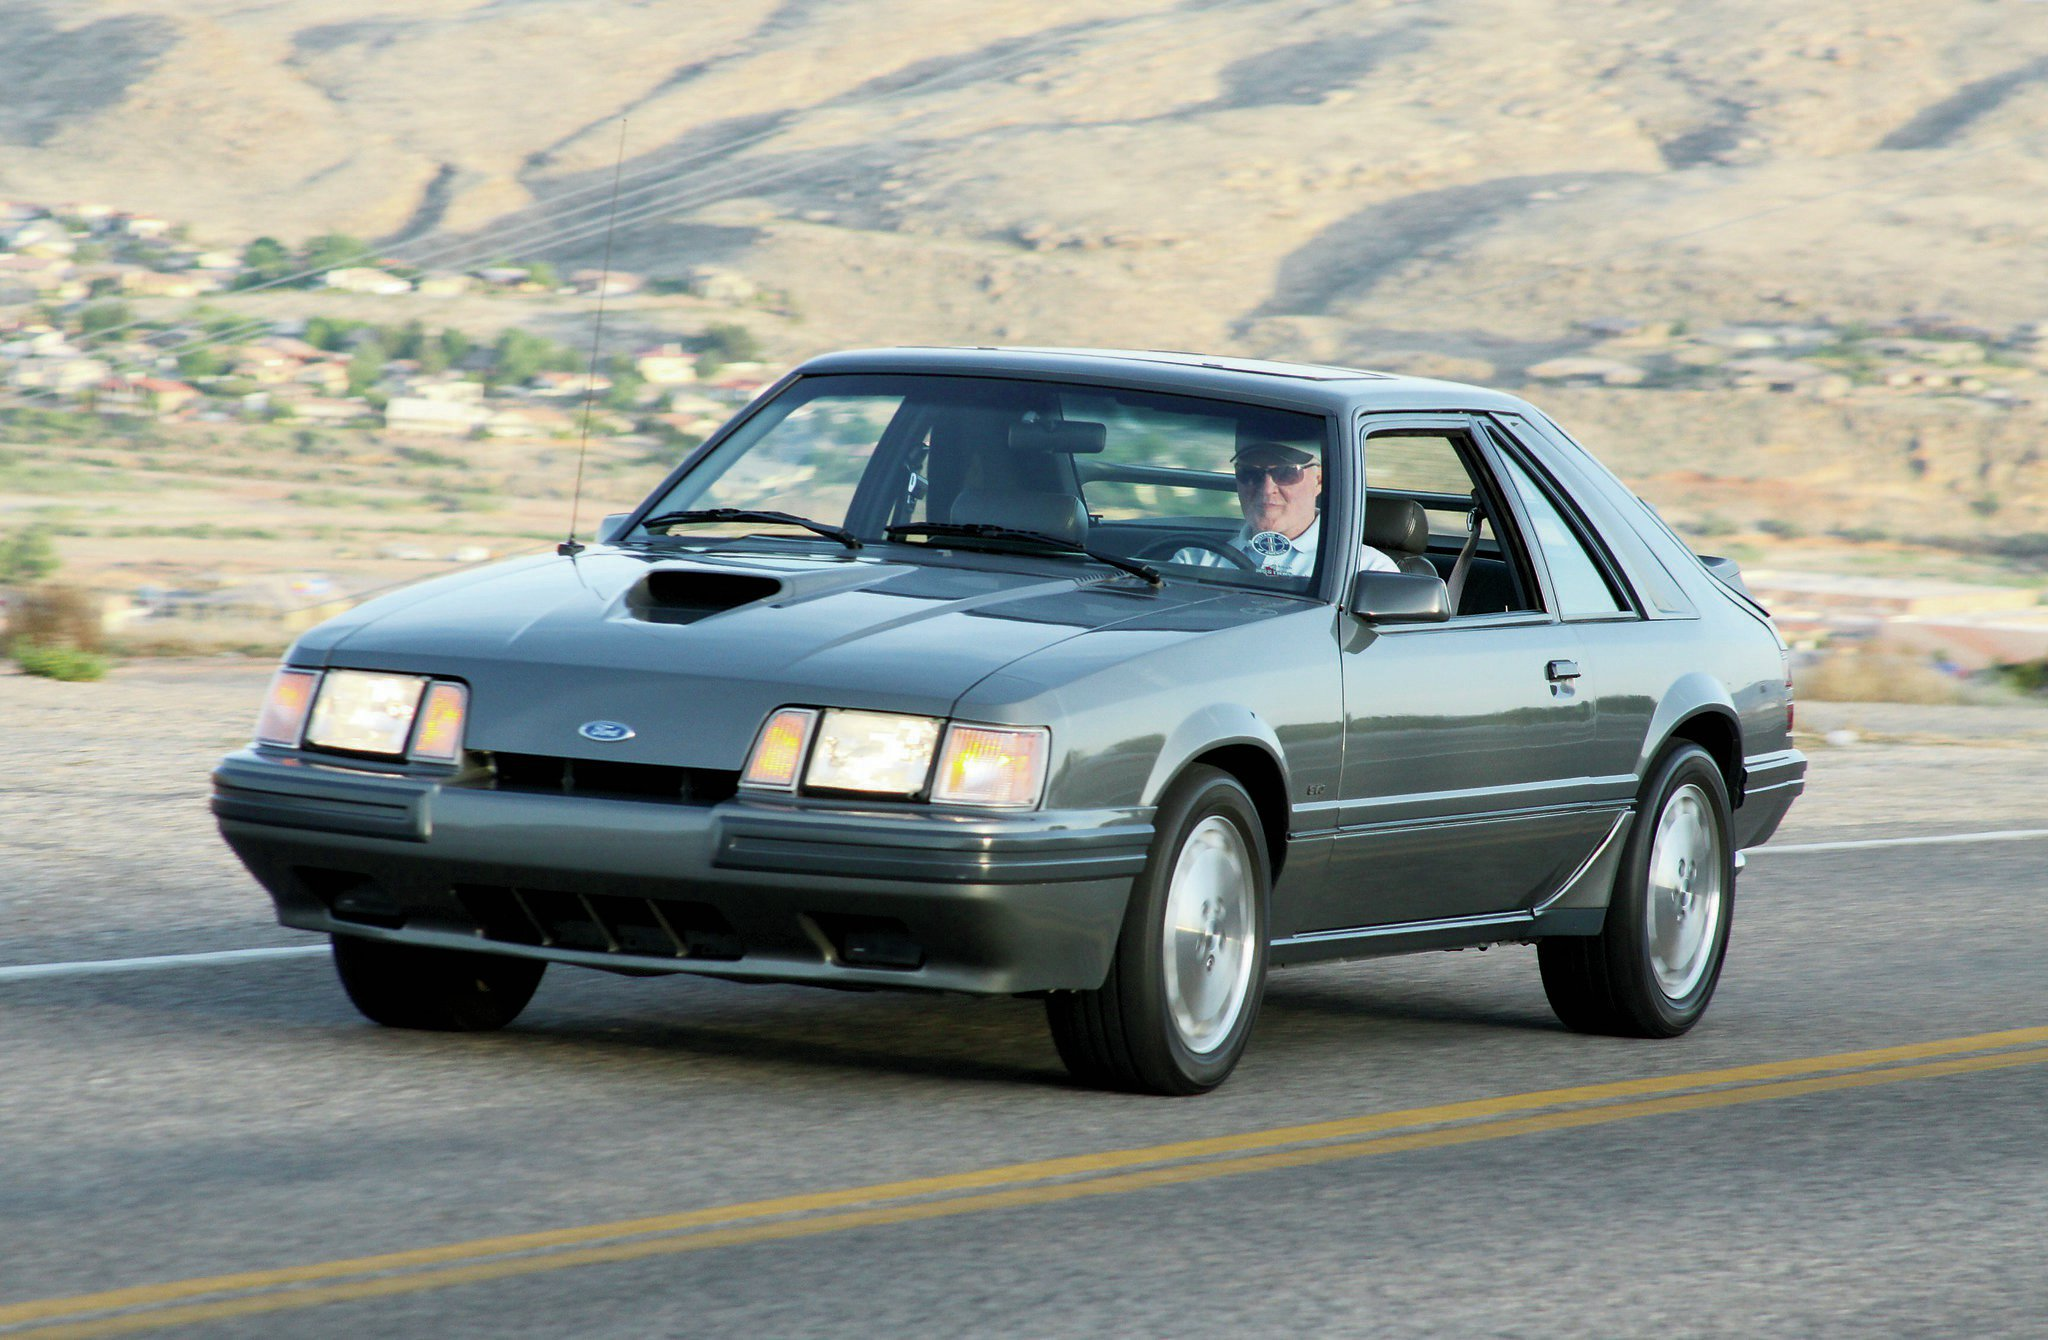 1986 Ford Mustang Front View